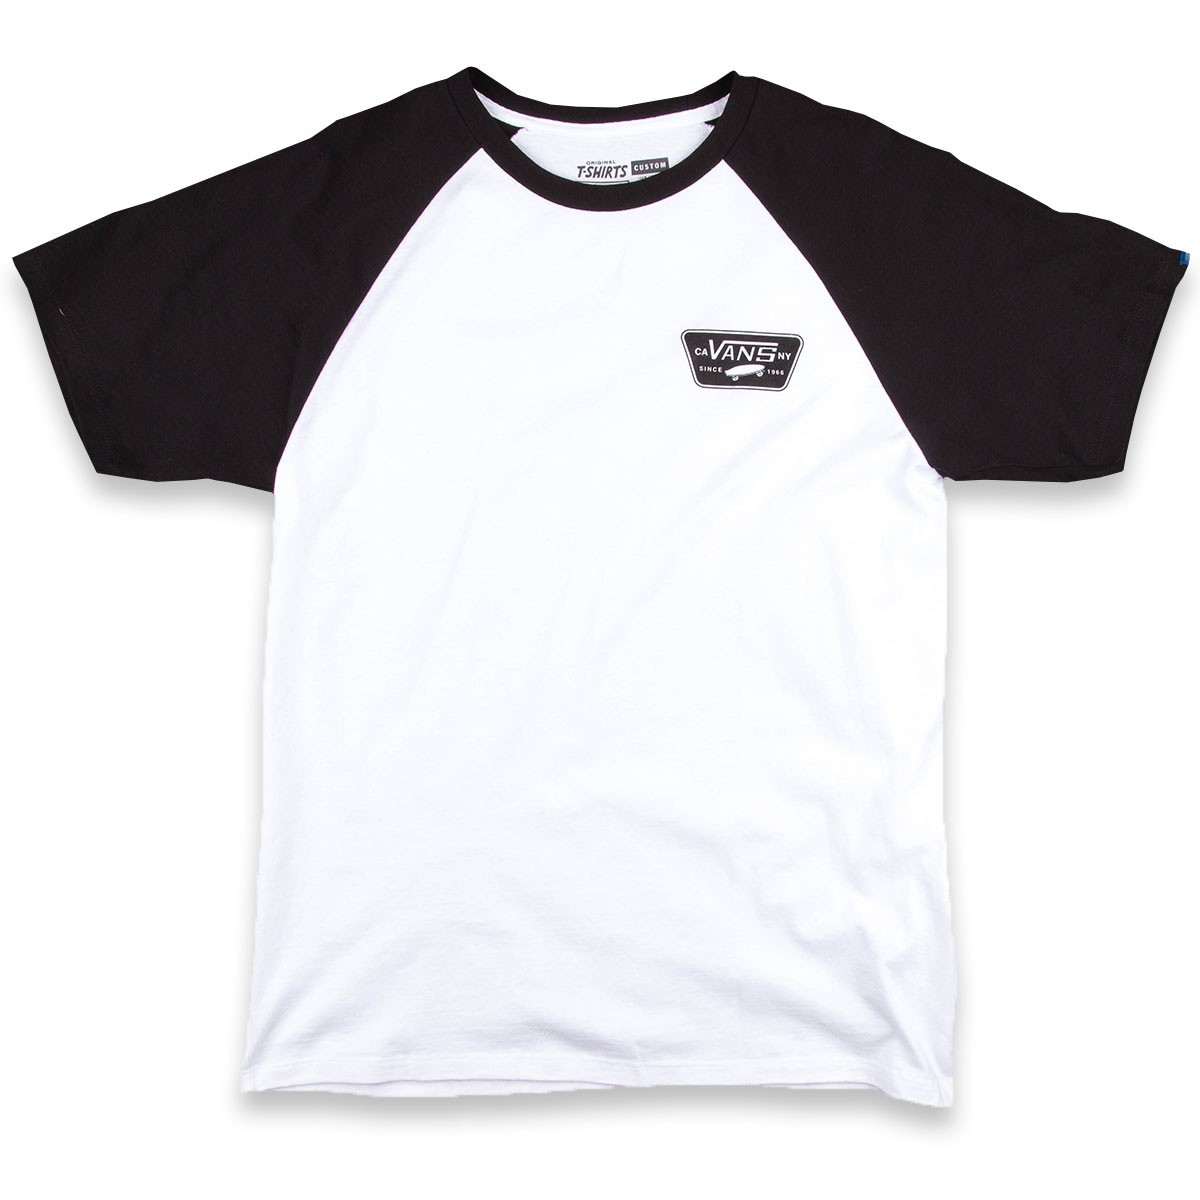 Vans full patch short sleeve raglan t shirt white black for Full black t shirt